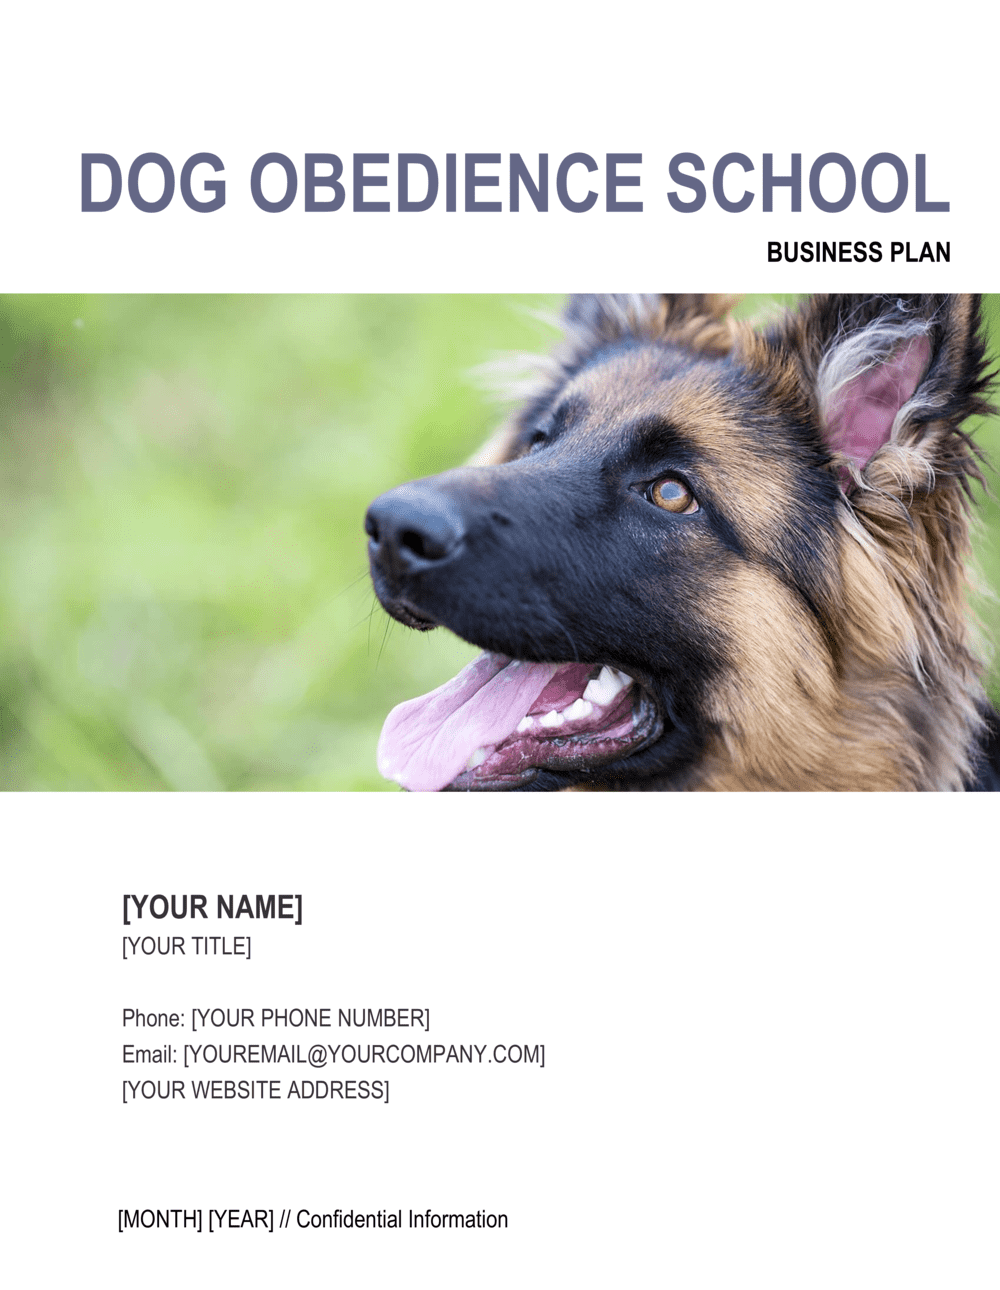 Business-in-a-Box's Dog Obedience School Business Plan Template